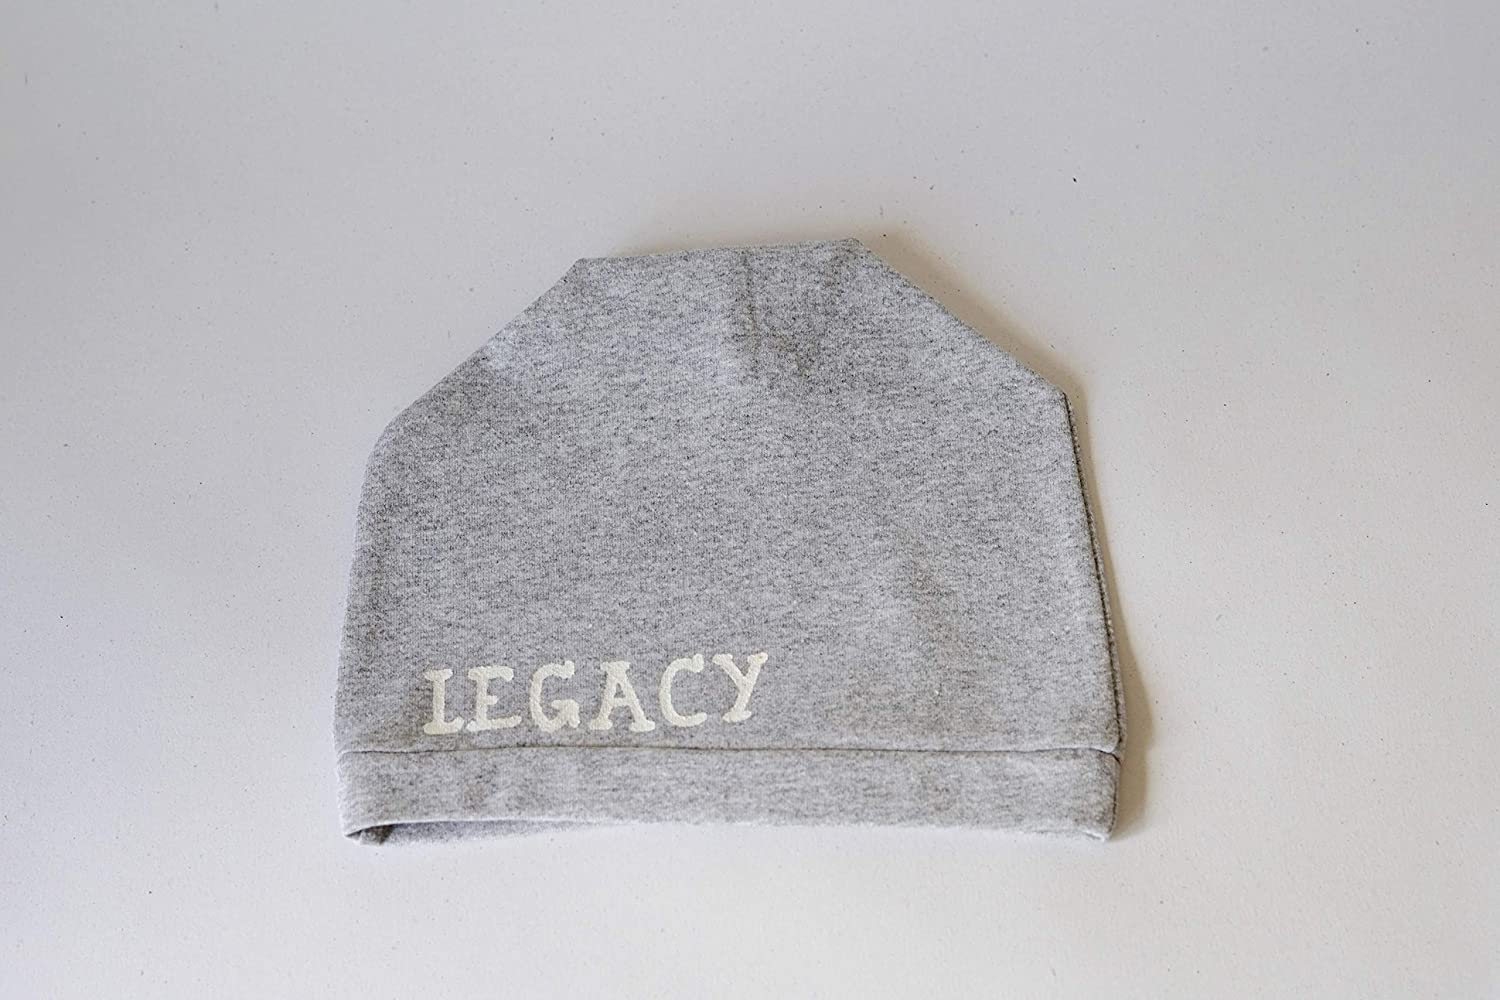 bf3a9c0b74c7a Fathers Day Gifts from Son Father Son Matching Beanie Hats Daddy and Me  Outfit Legend and Legacy Gifts Set of 2 Beanies  Amazon.co.uk  Handmade